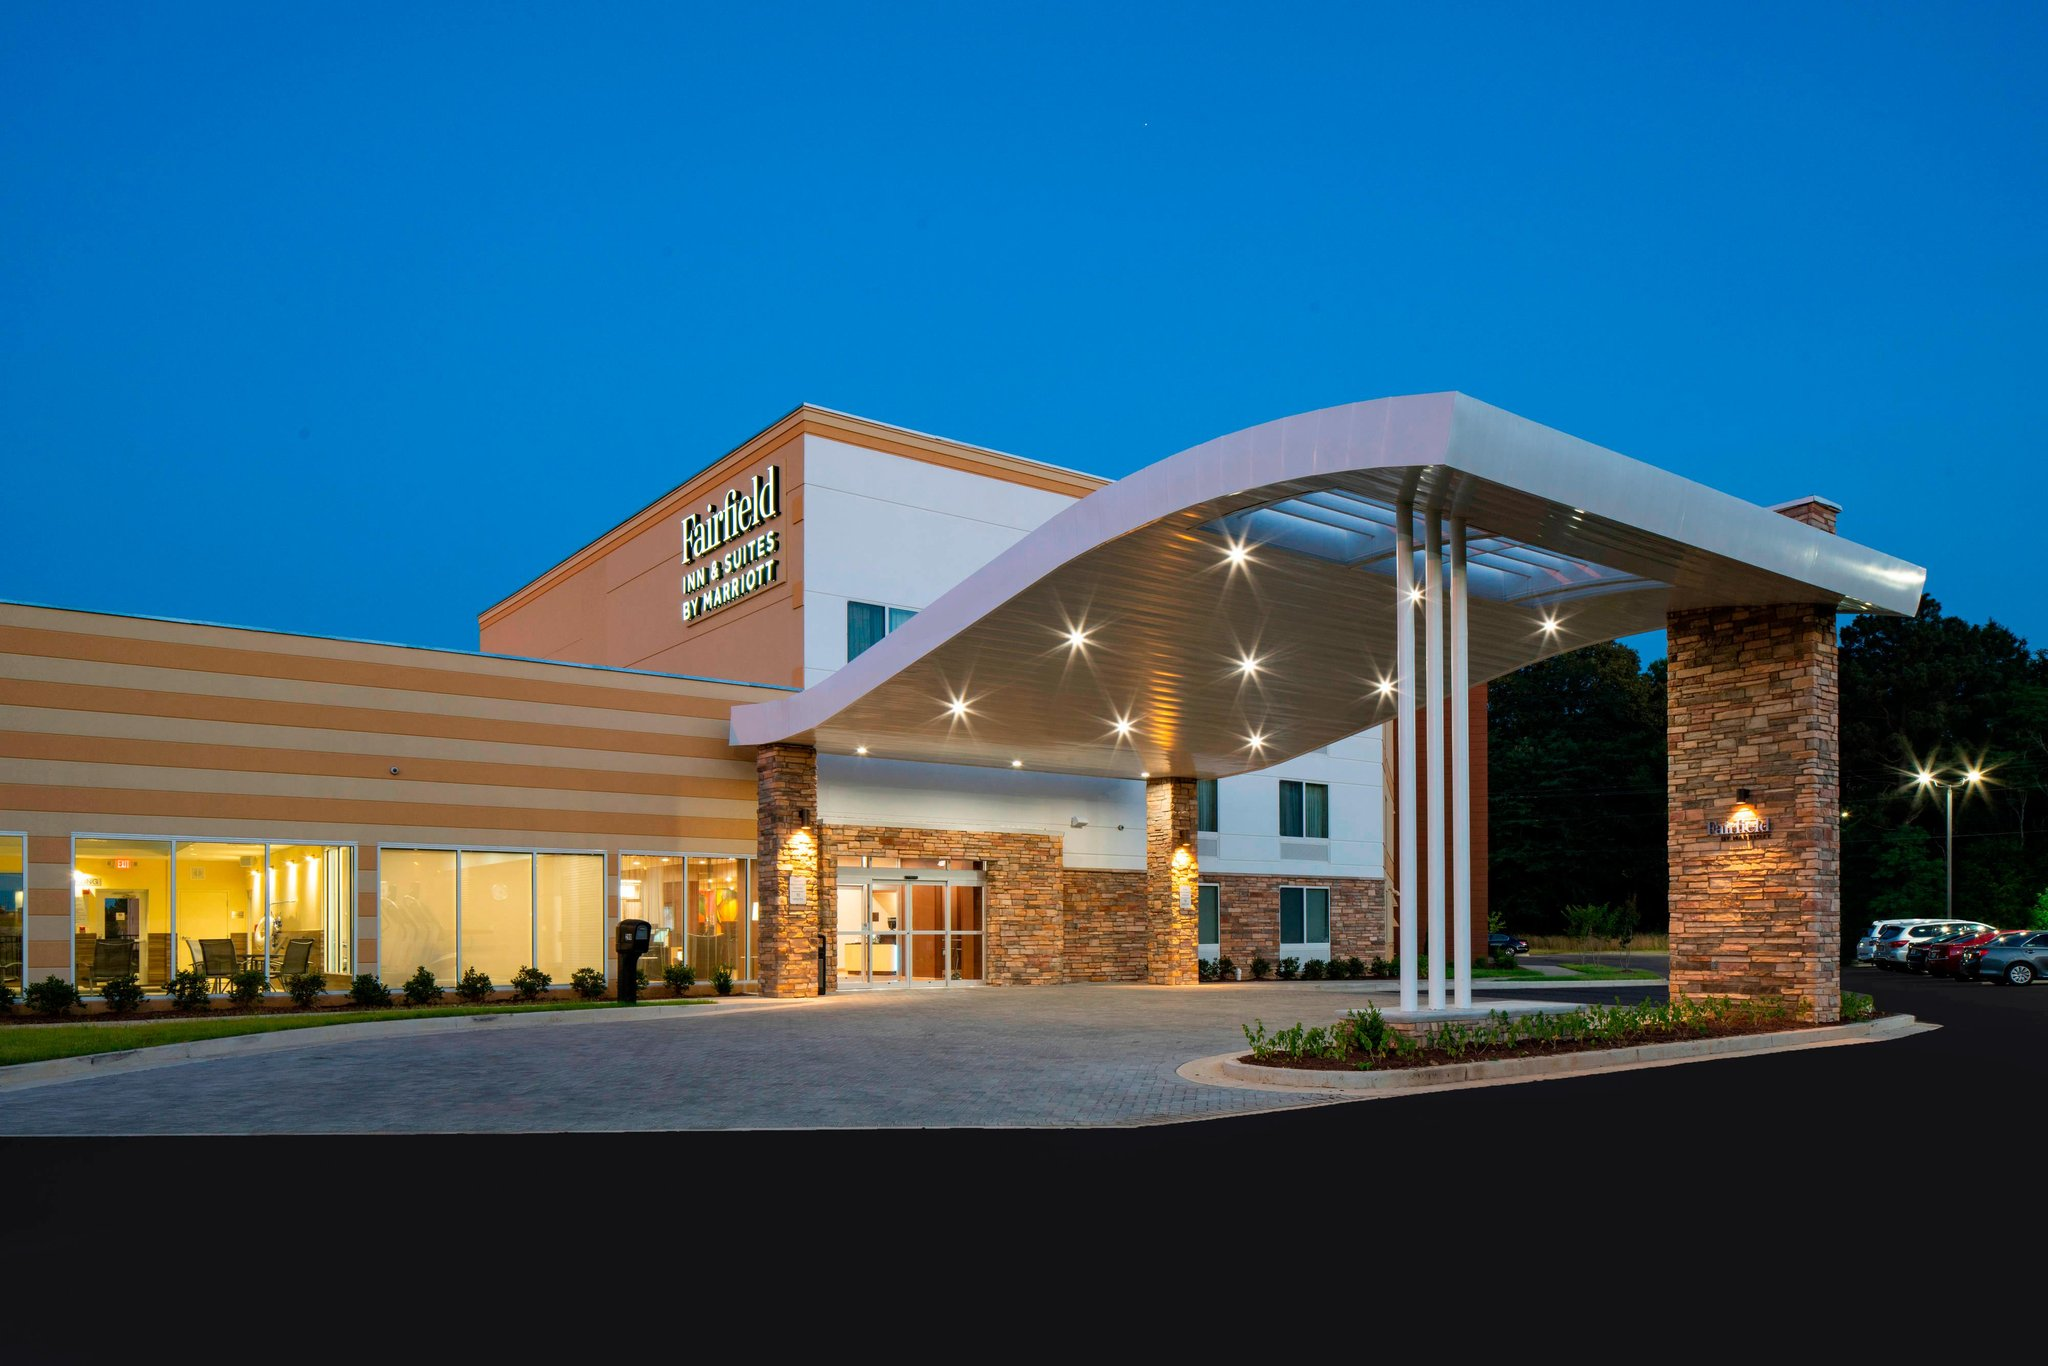 Fairfield Inn & Suites Batesville